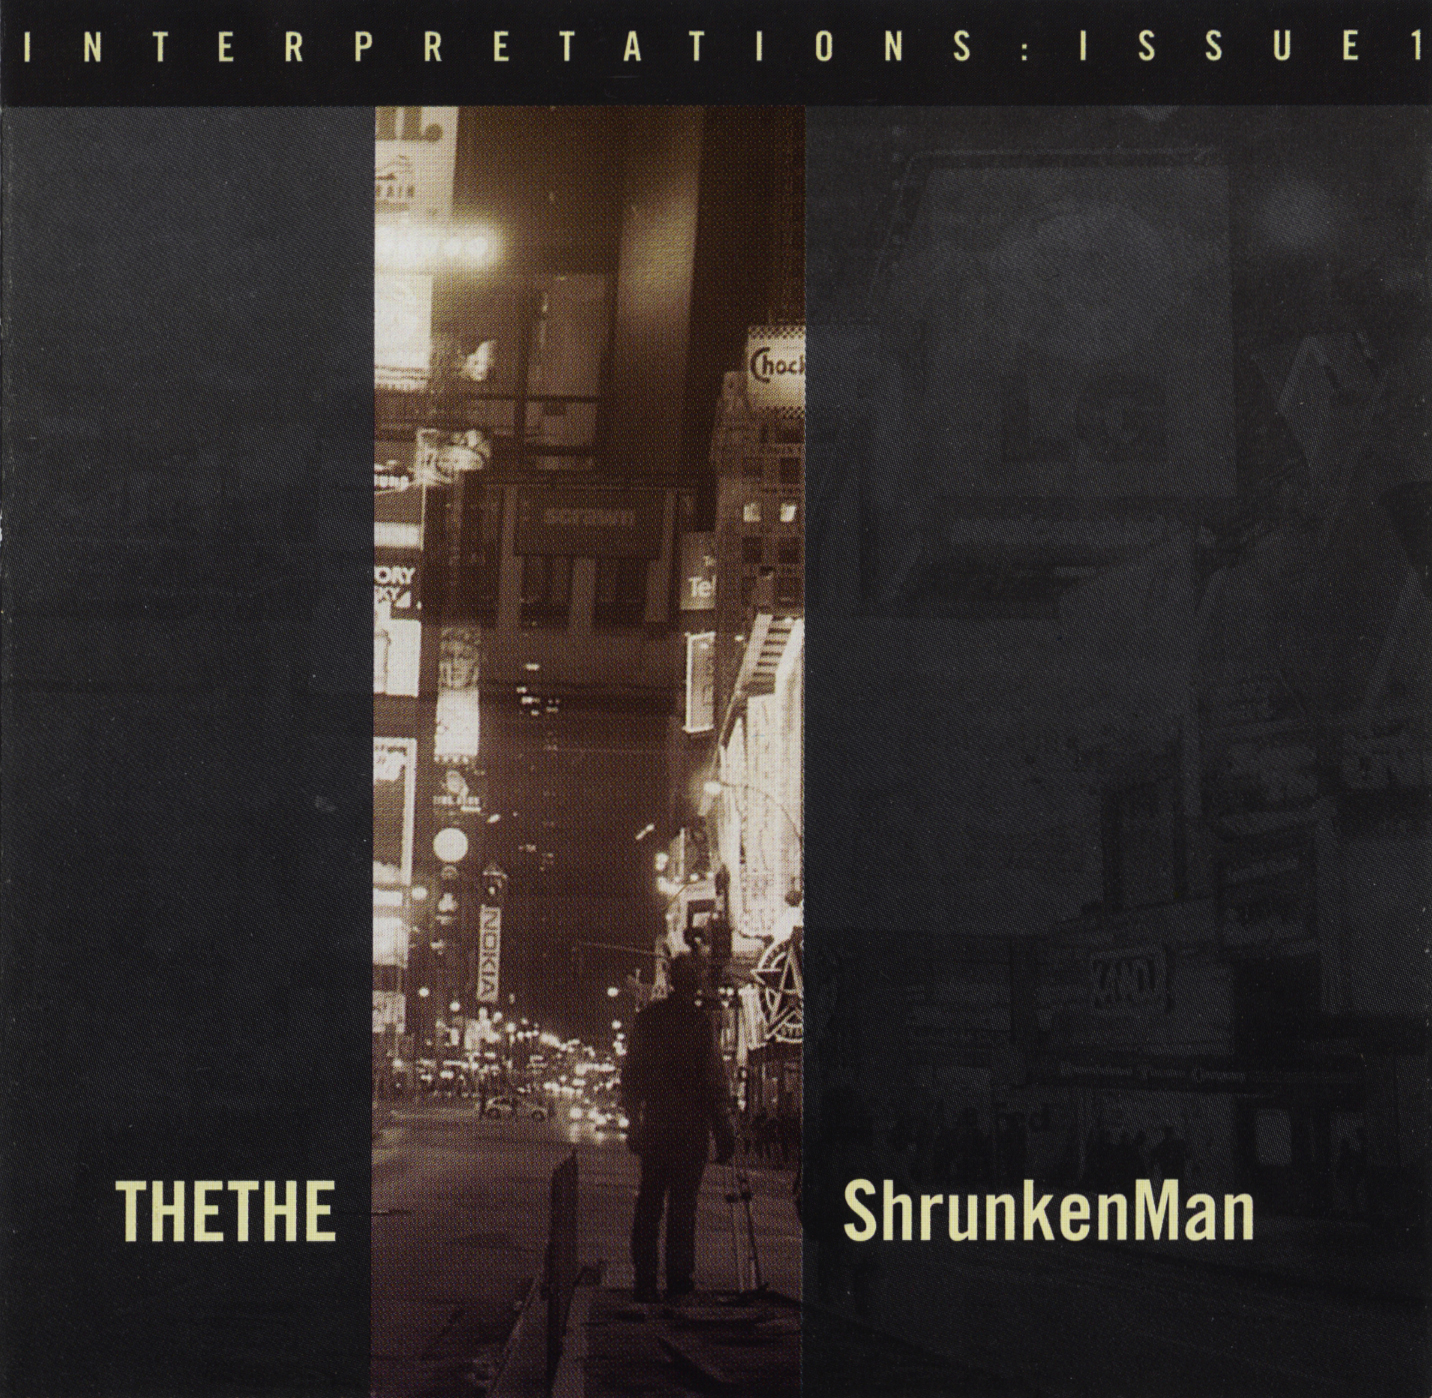 News – The The – Interpretations Issue 1: ShrunkenMan